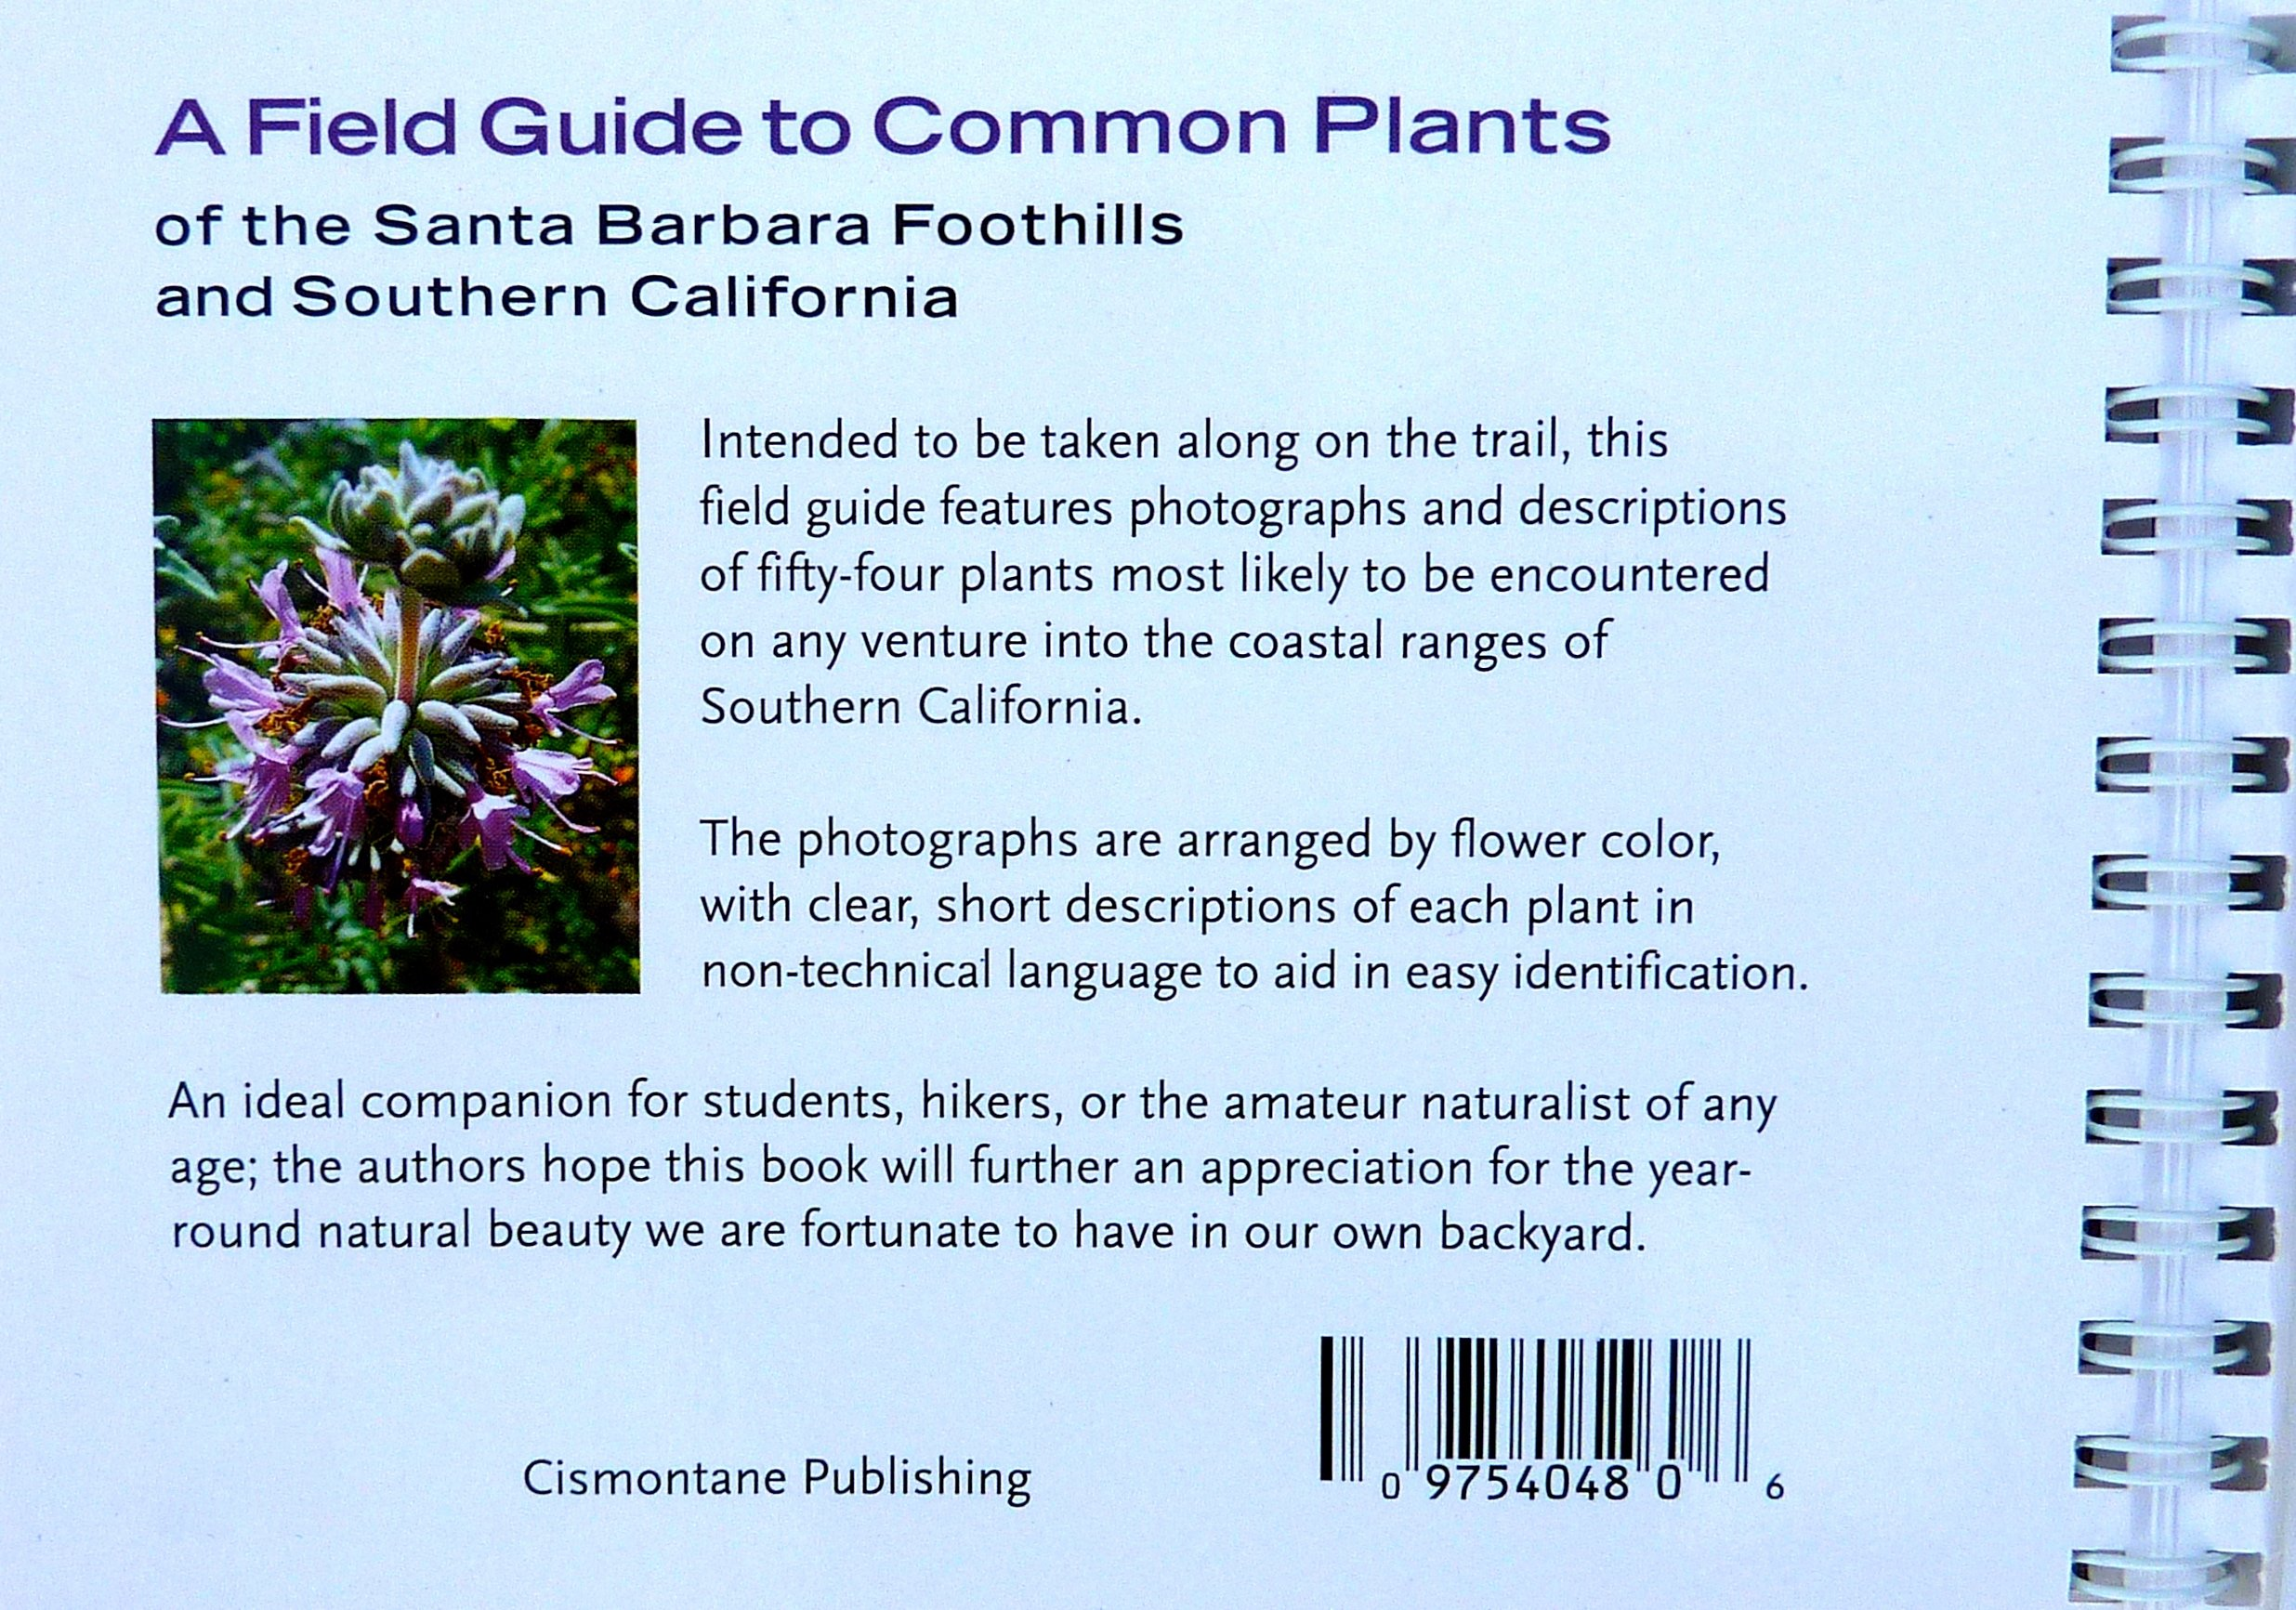 field guide to common plants of the santa barbara foothills and